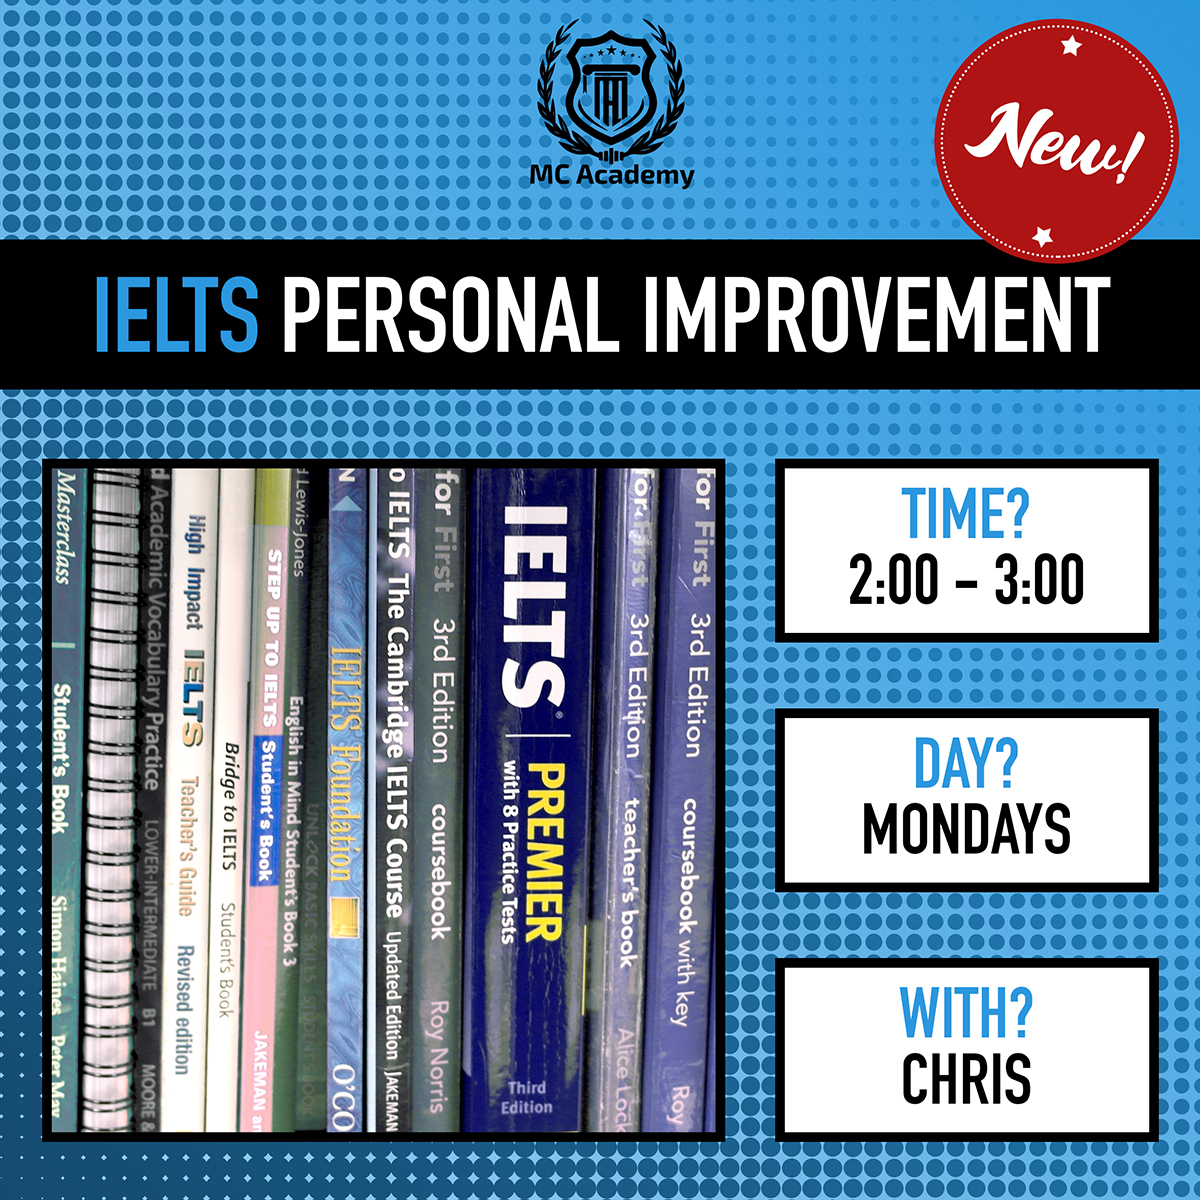 IELTS - Personal Improvement